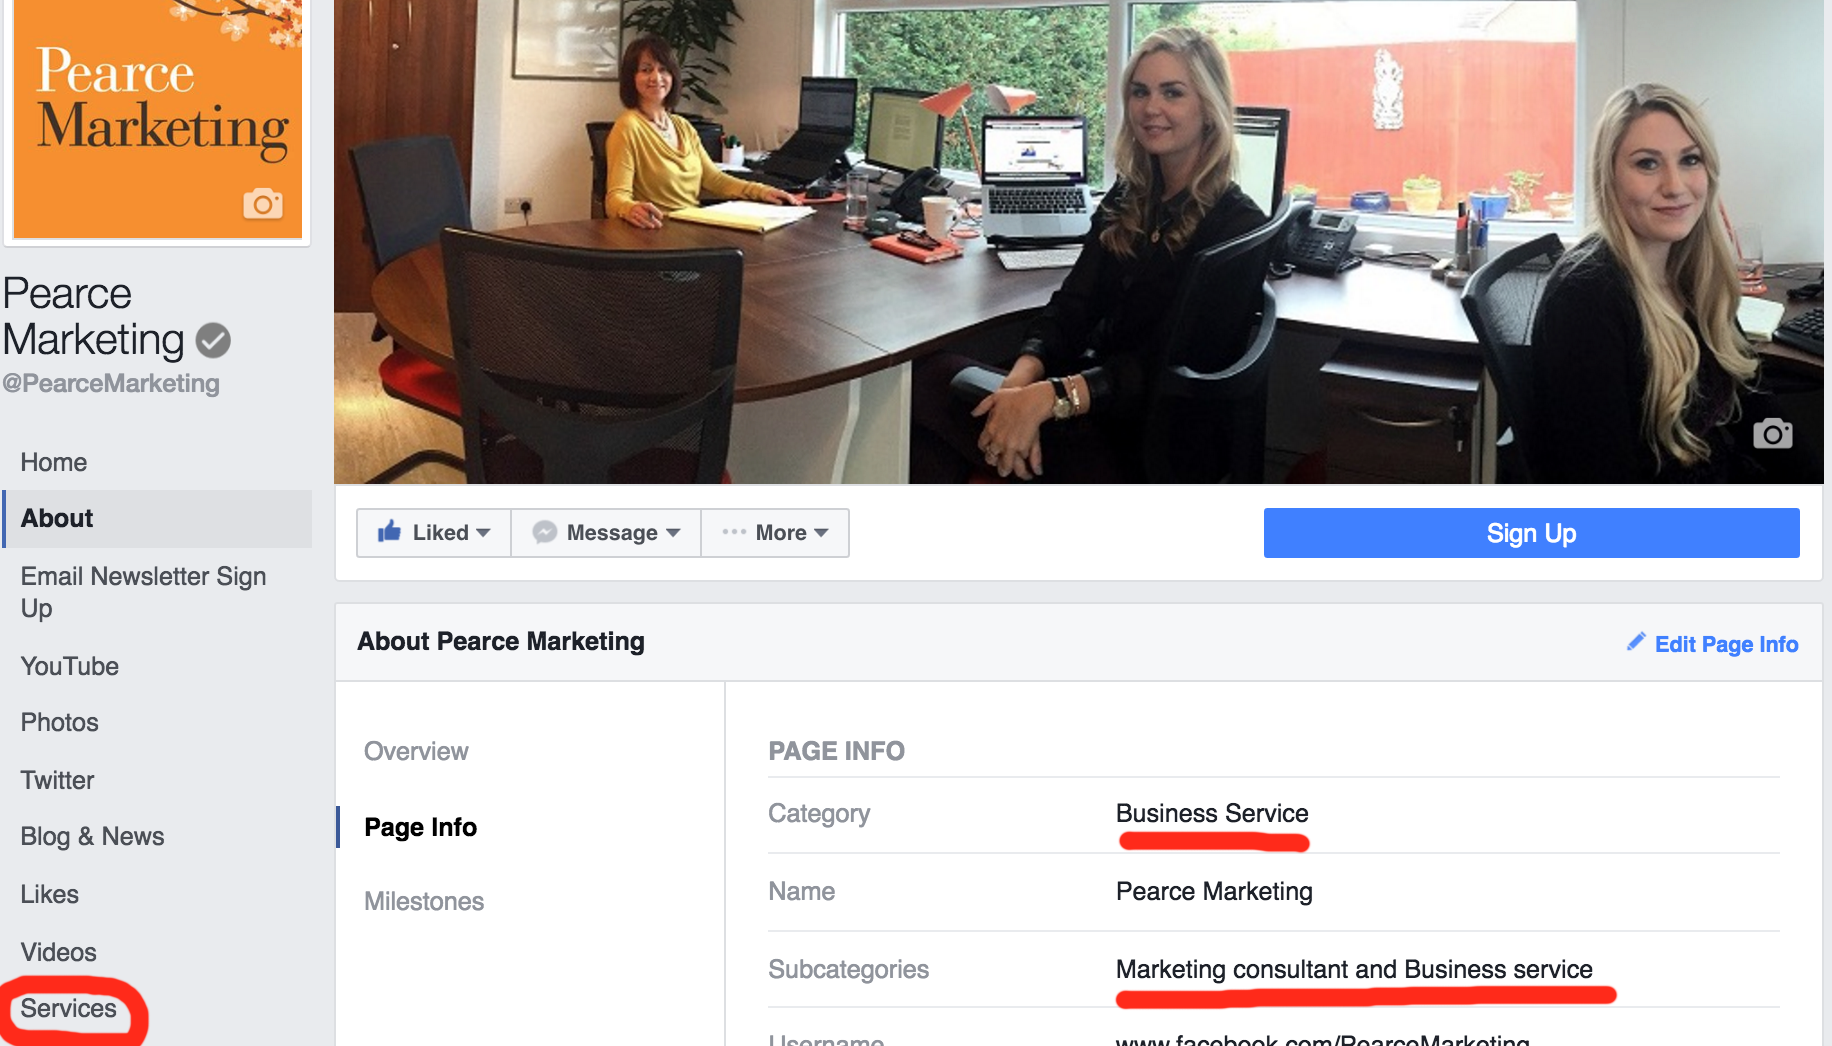 How to add services to your Facebook business page